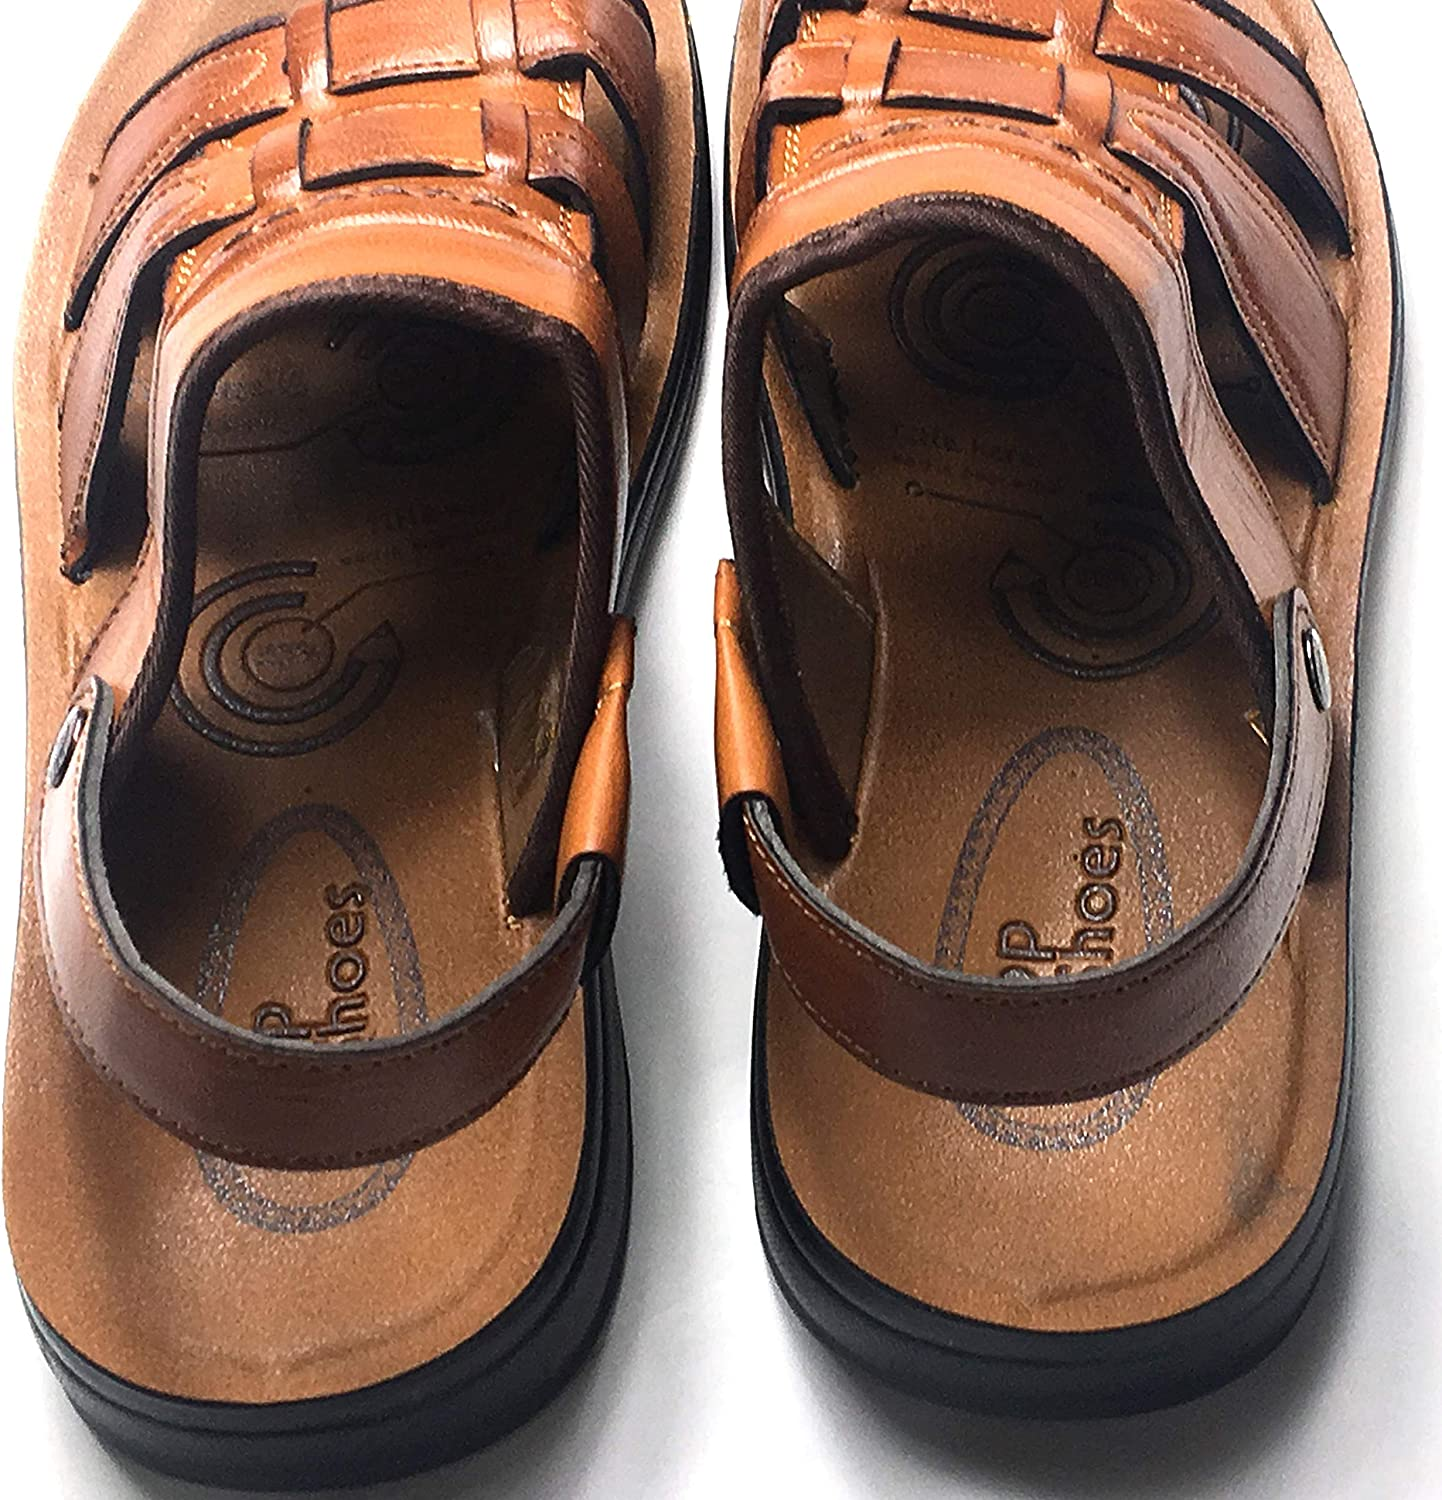 Mens Open Toe Casual Leather Comfort Shoes Sandals